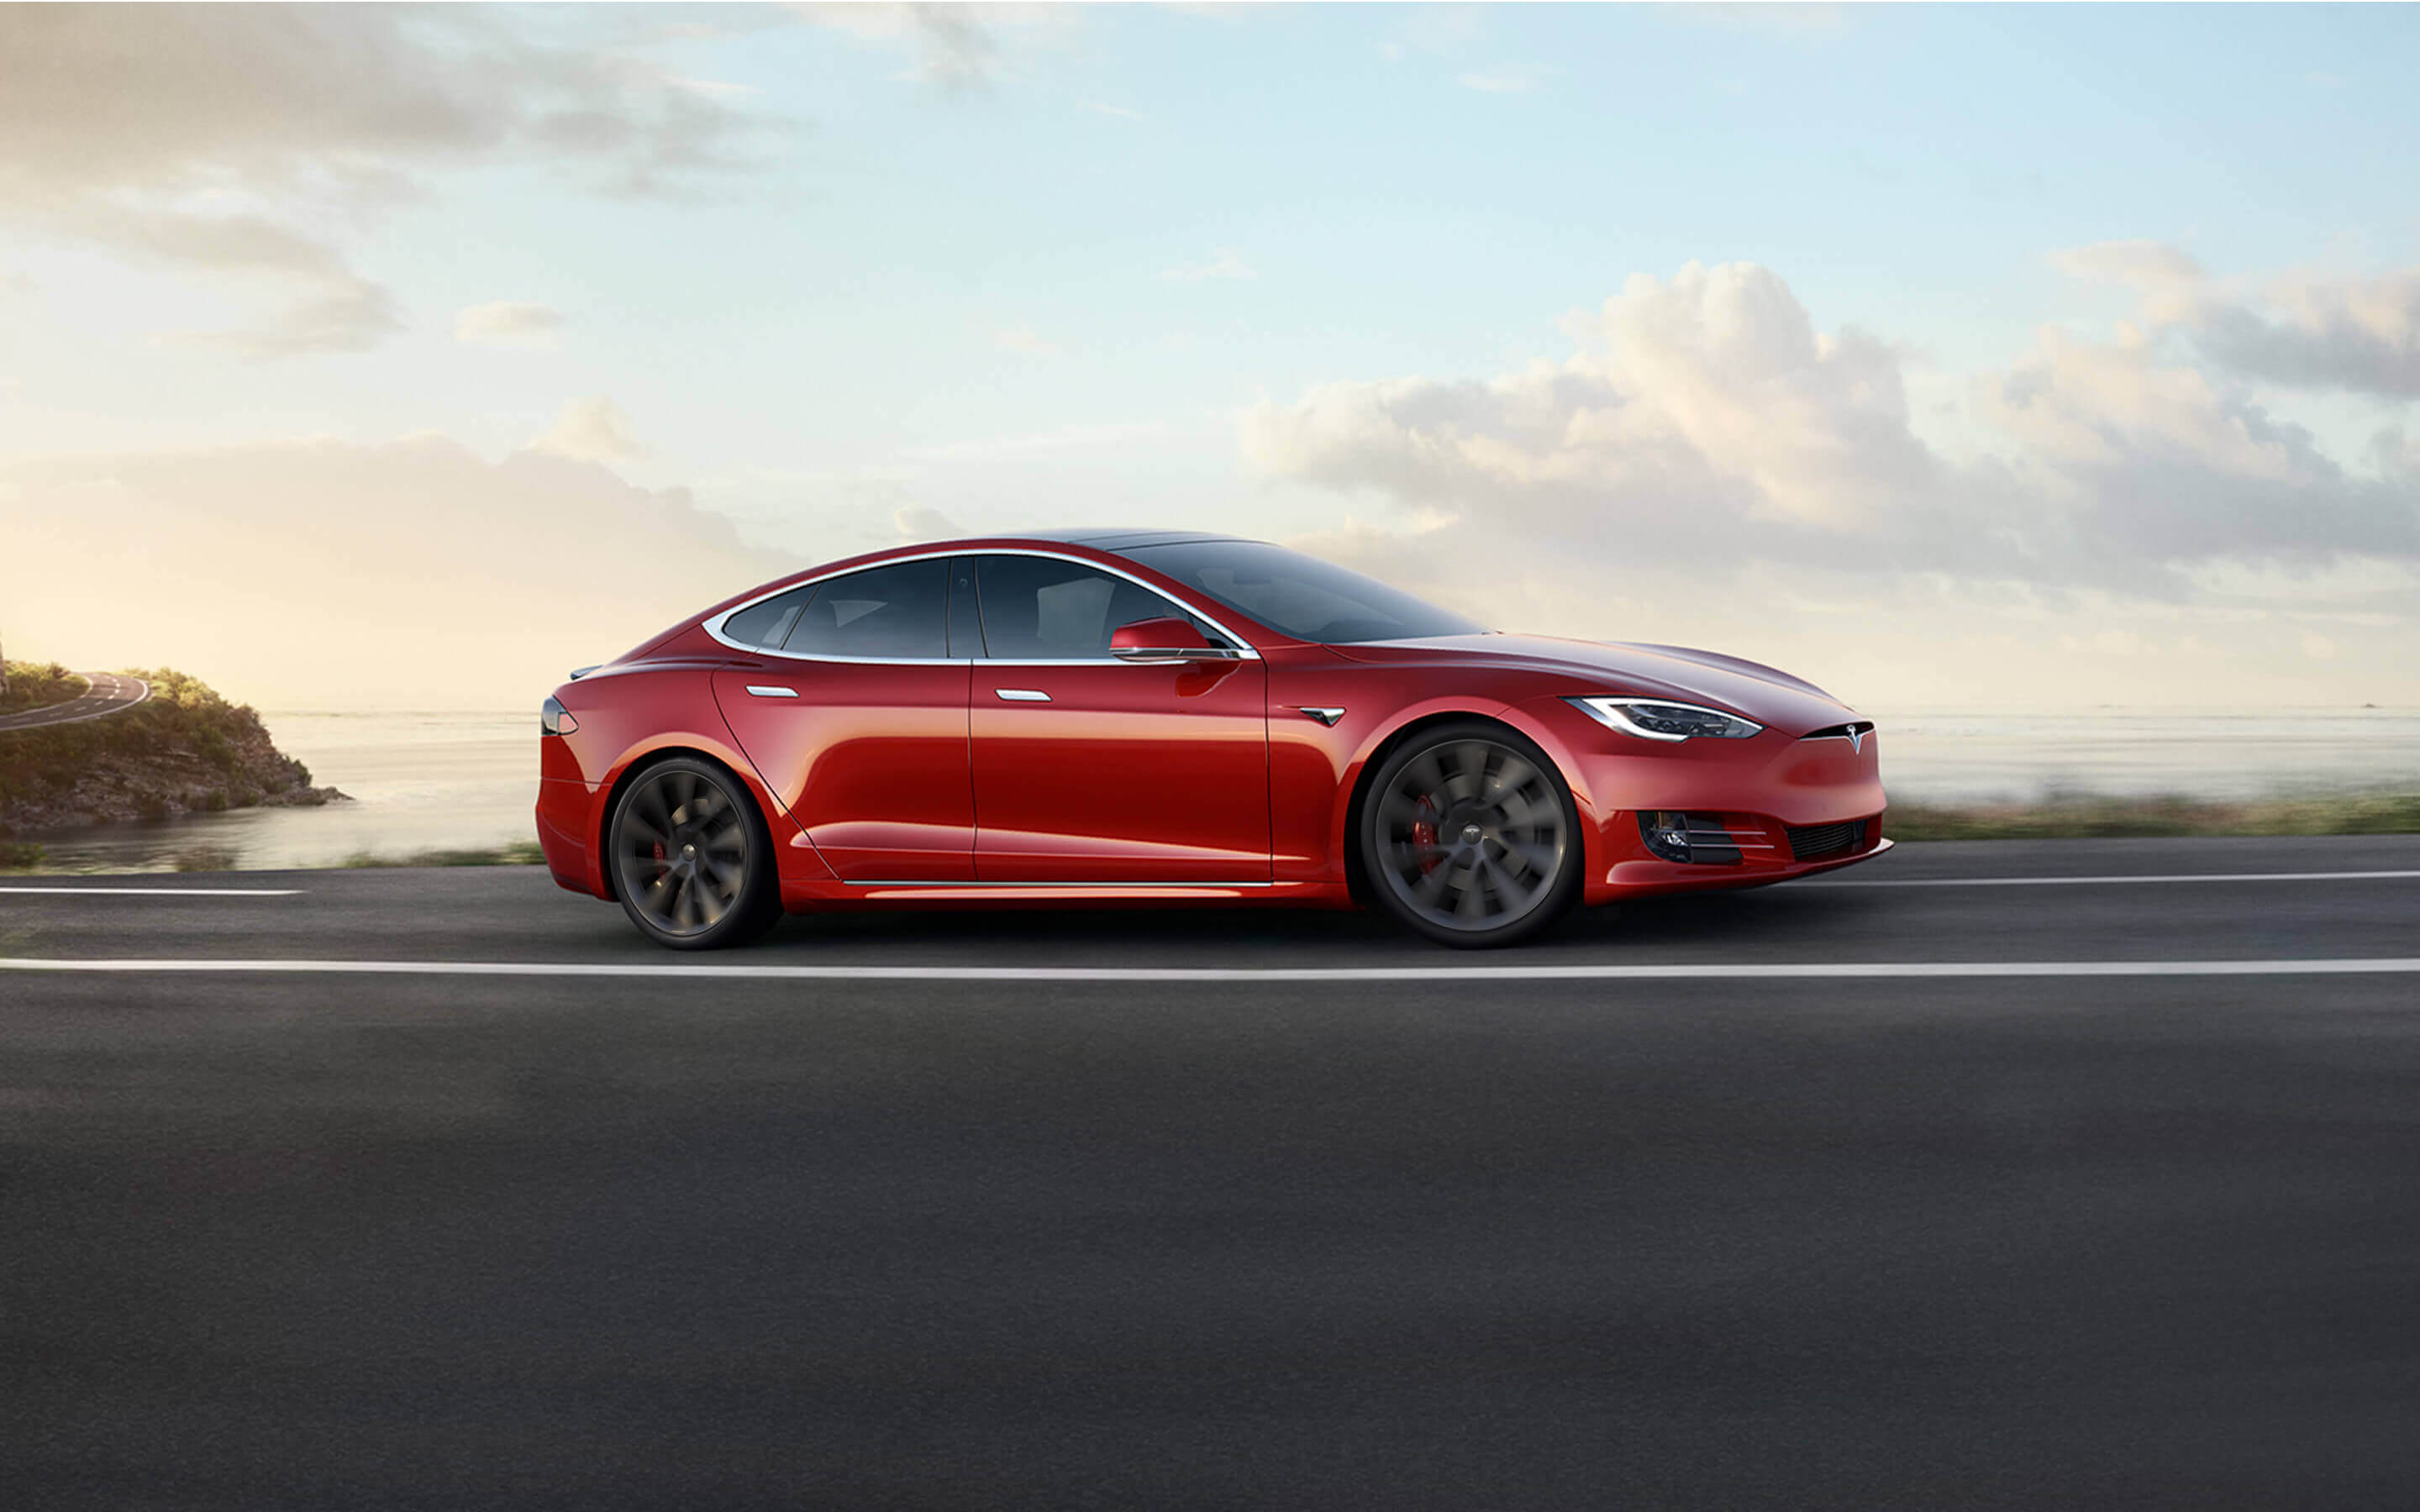 Red Model S accelerating down an oceanside highway